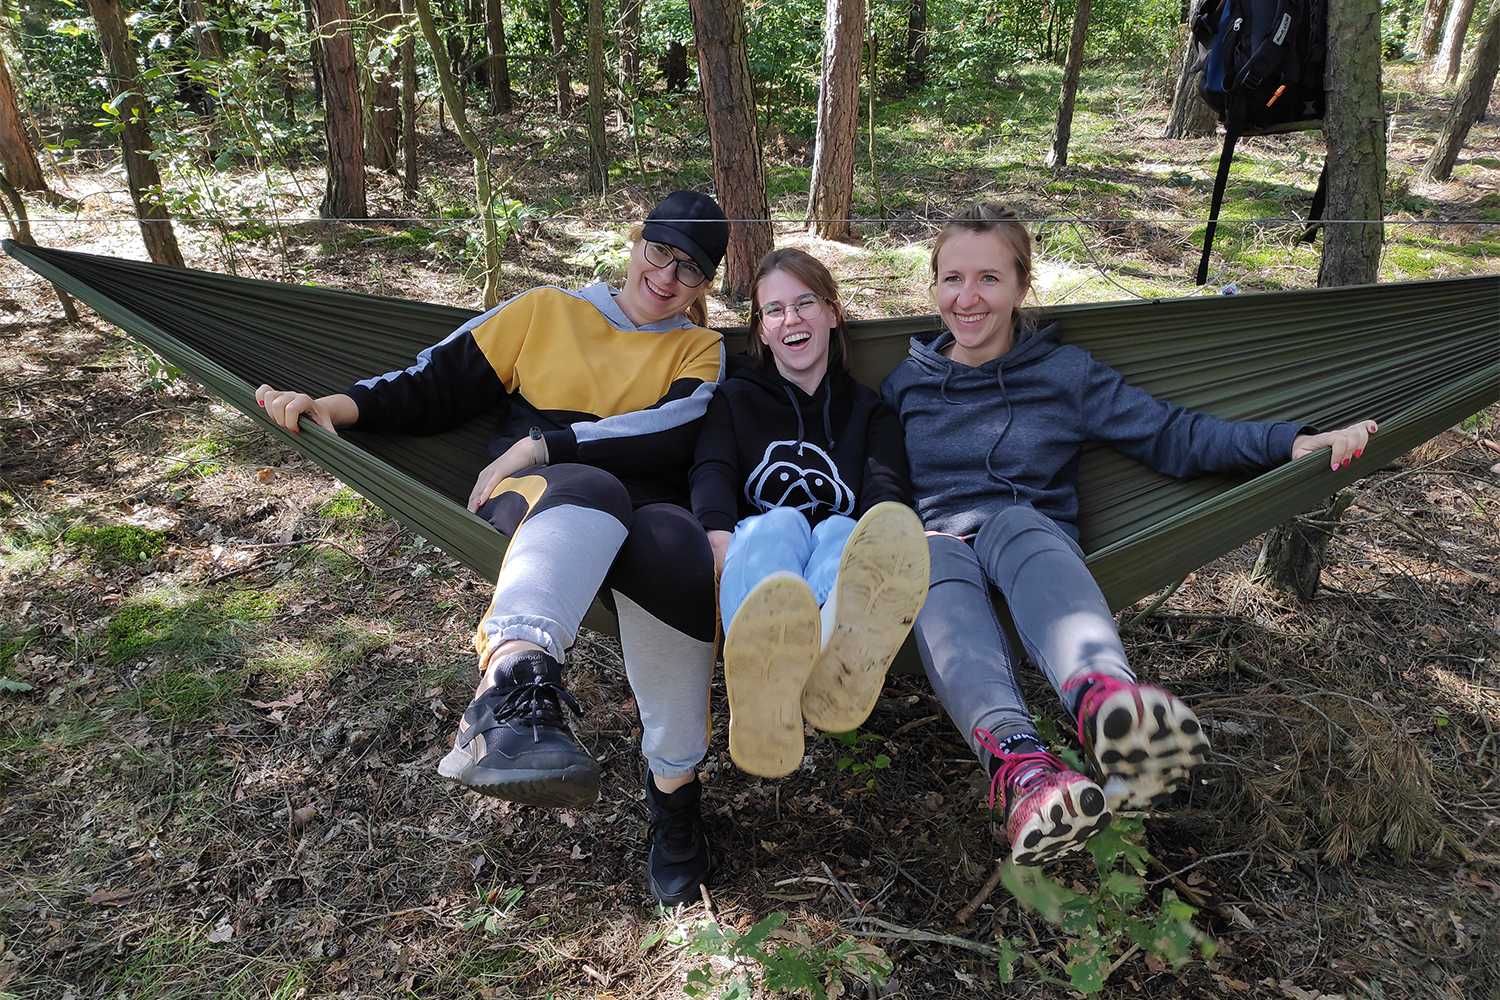 Employees in a hammock: successful team building activity and game outside the office.